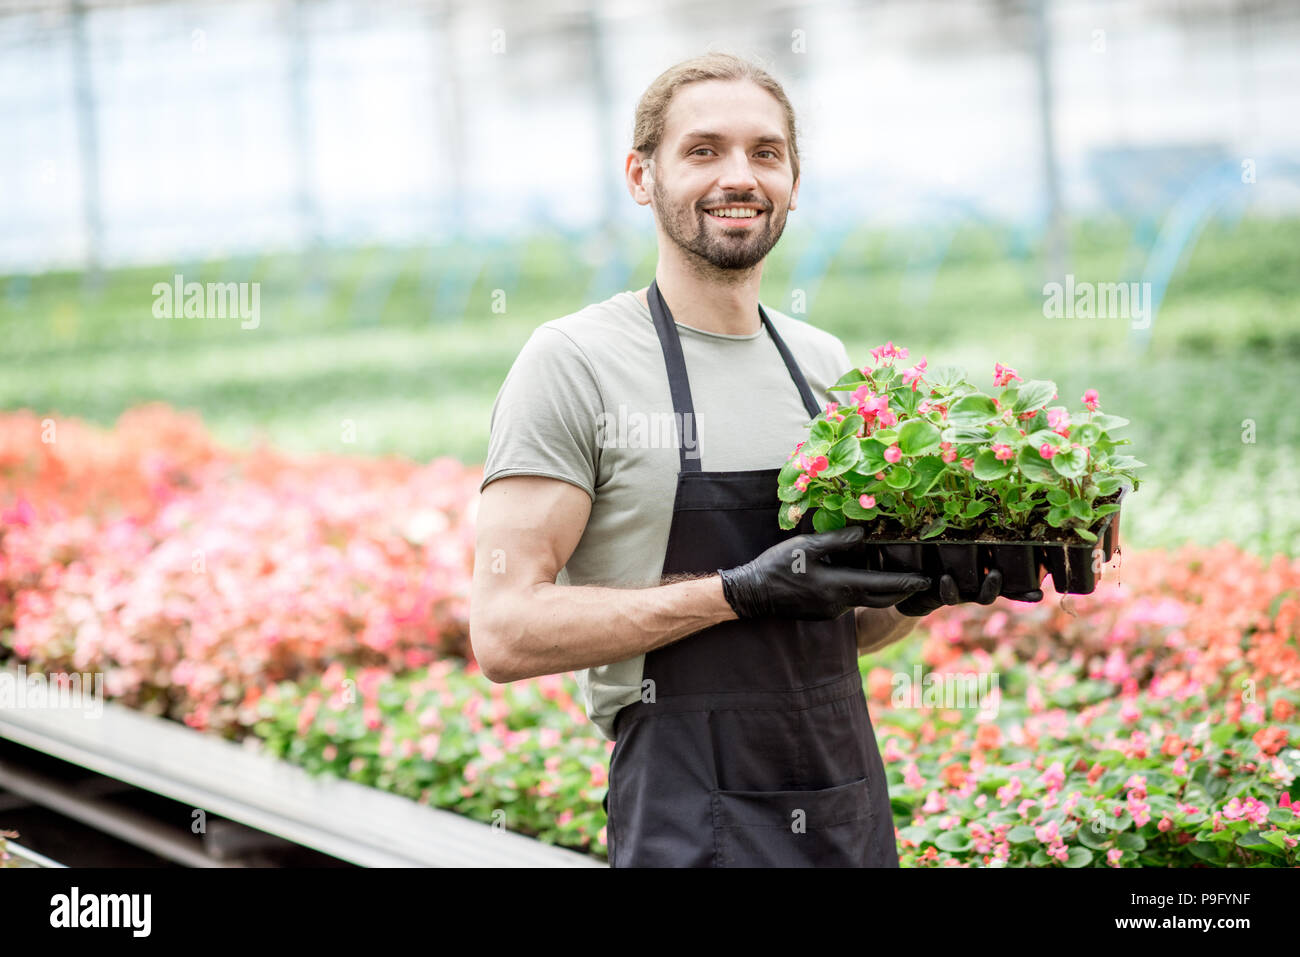 Worker with flower in the greenhouse - Stock Image